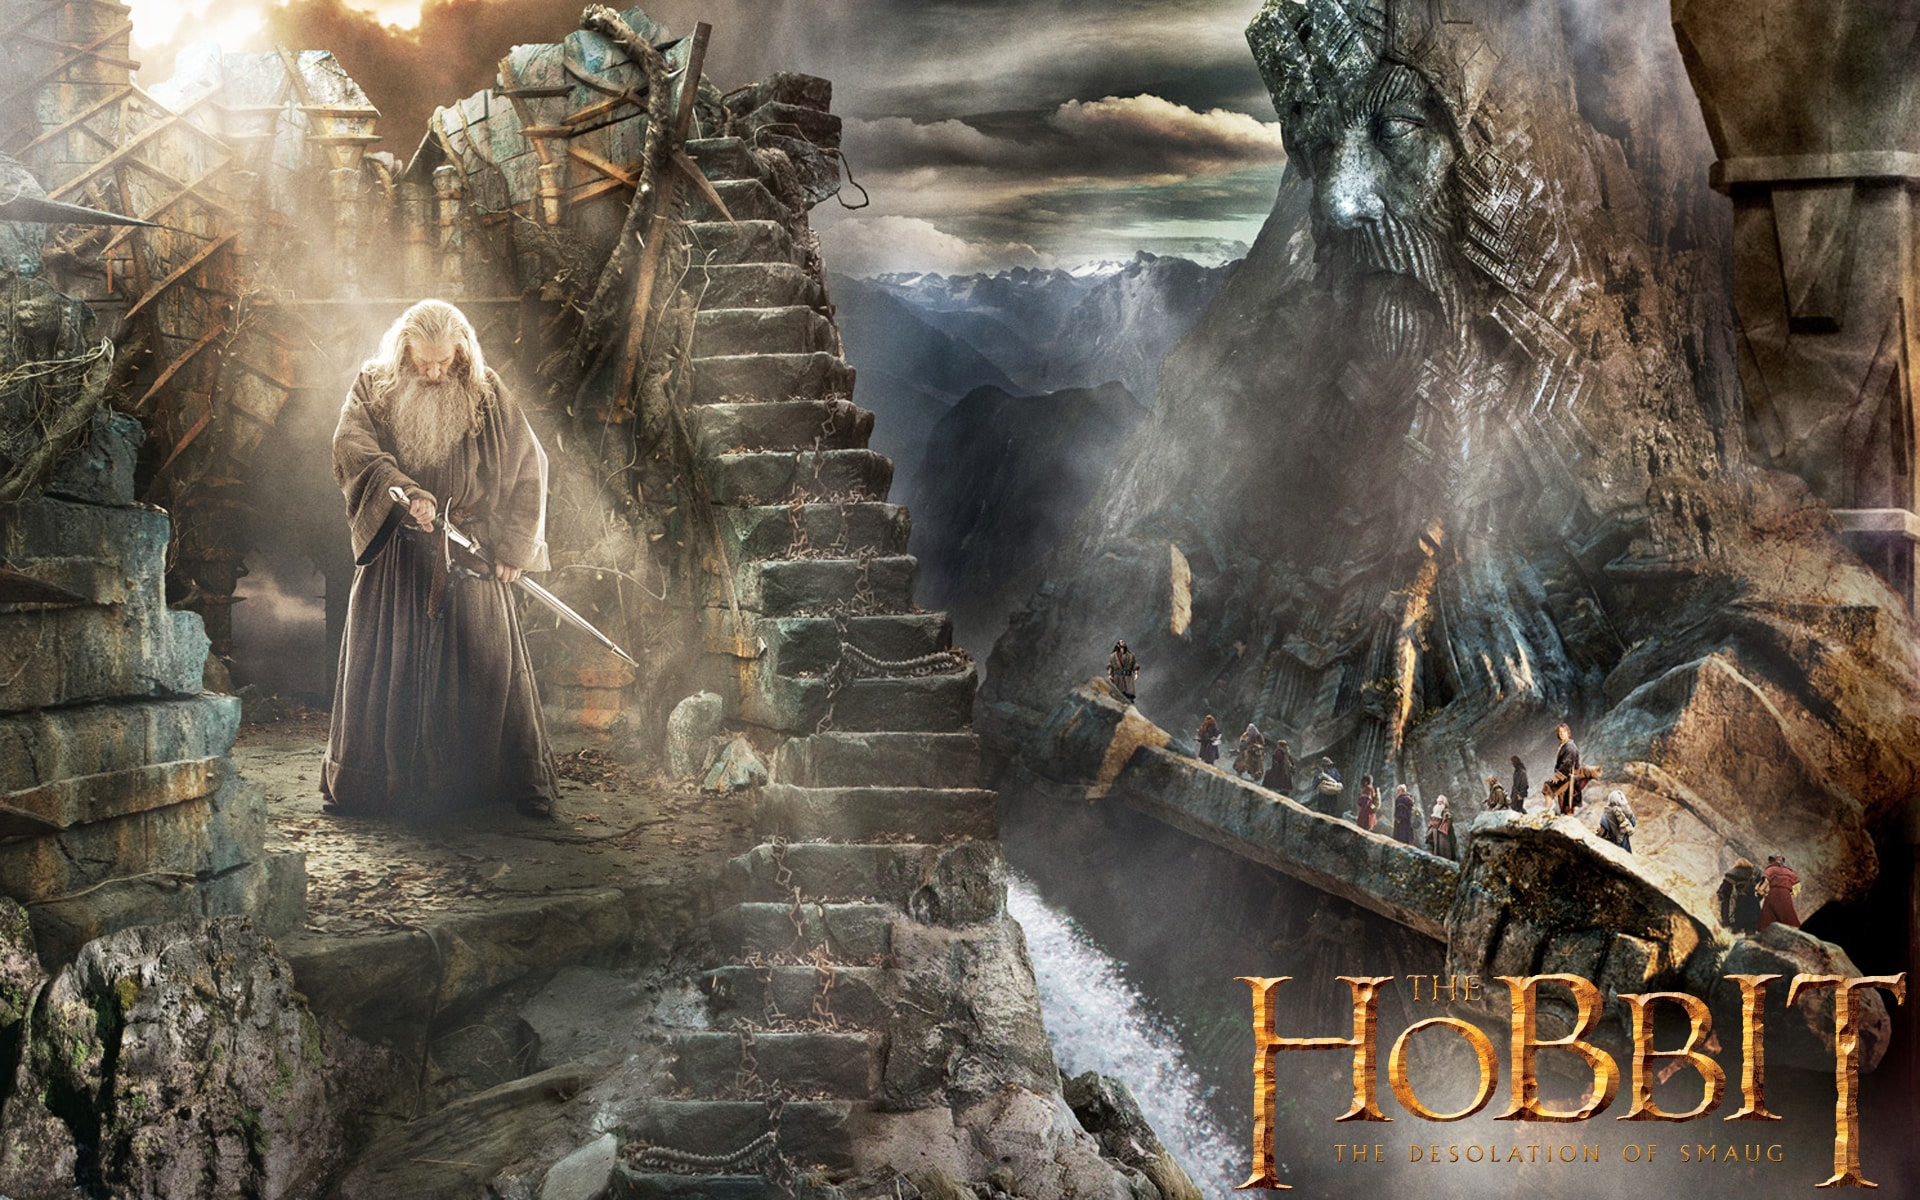 The Hobbit: The Desolation Of Smaug for mobile